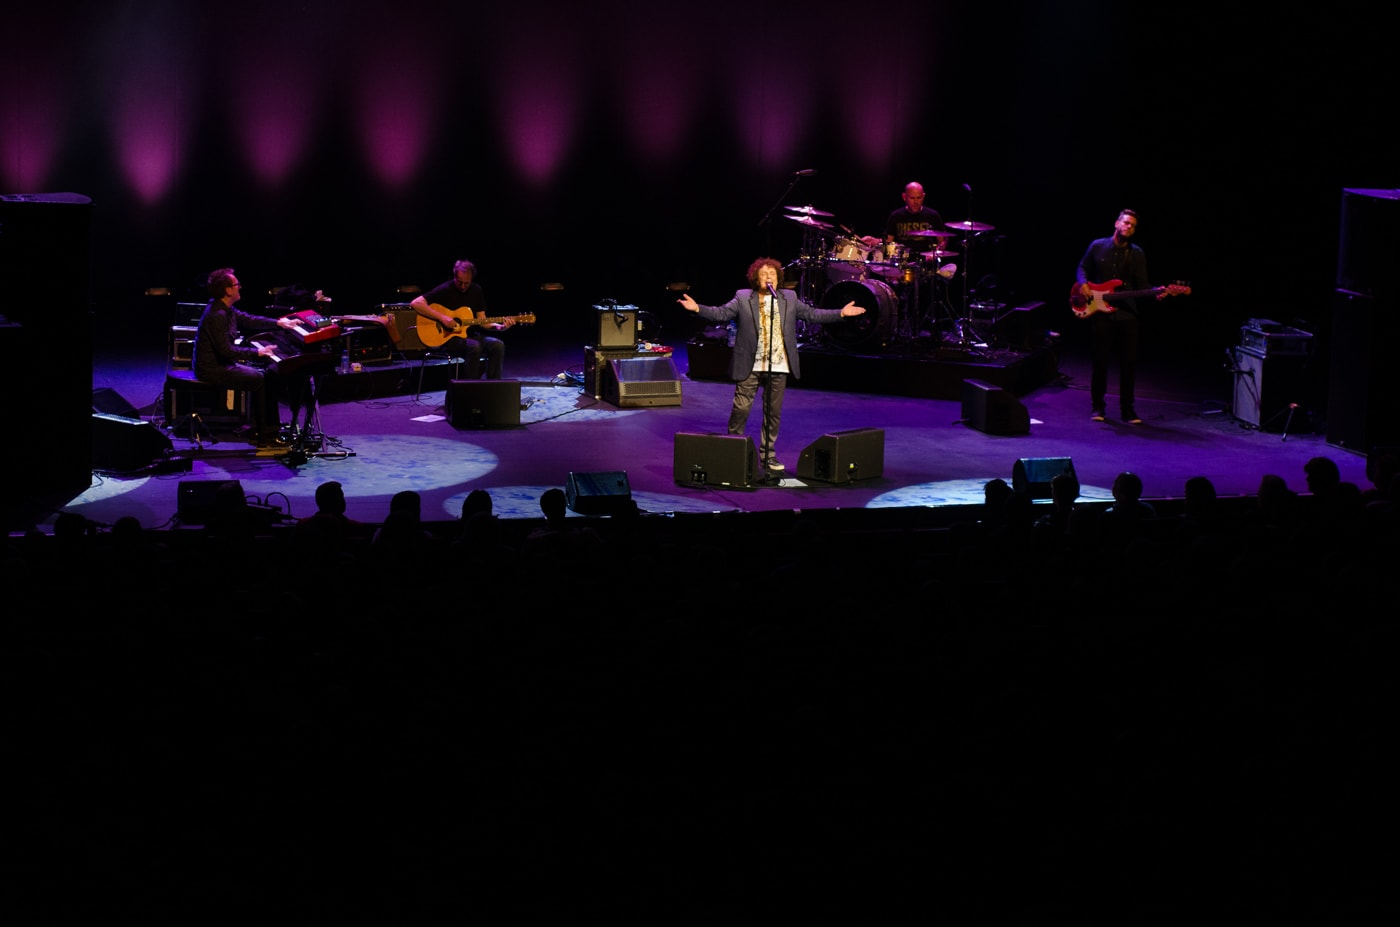 Leo Sayer at Bord Gais Energy Theatre by Sean Smyth (16-10-15) (47 of 129)